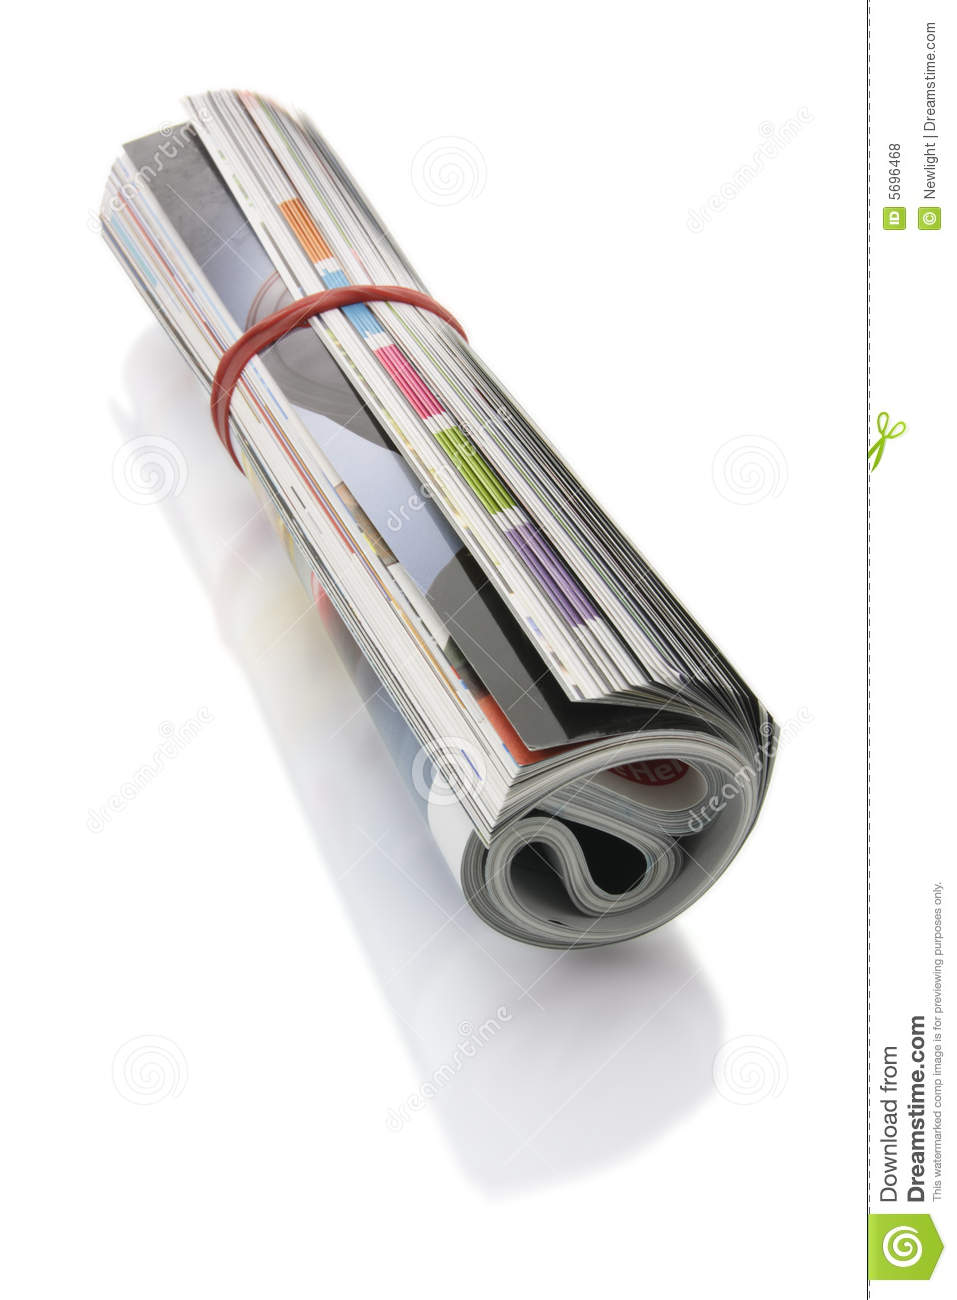 Compartimento Rolled-up